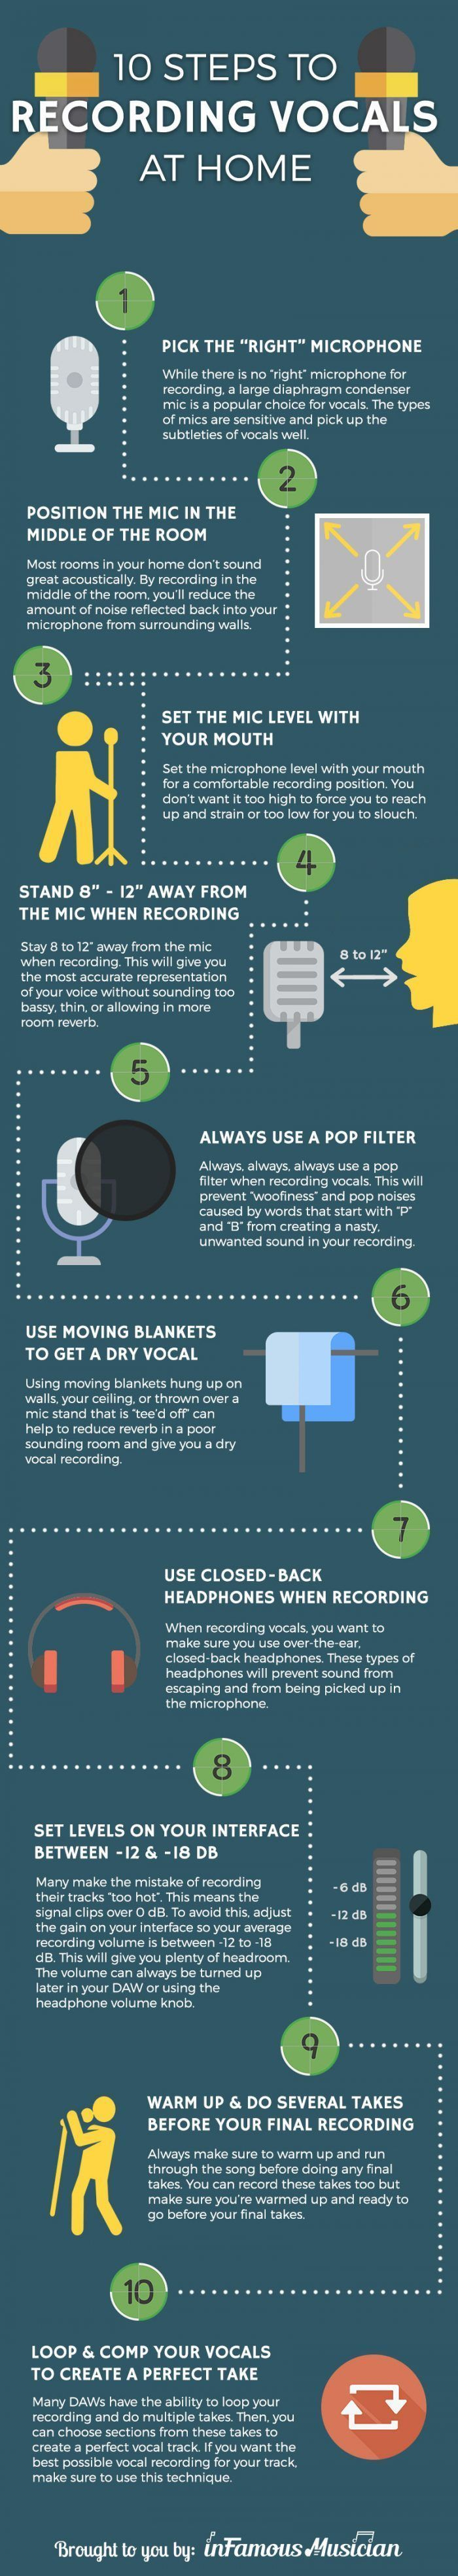 10 Steps to Recording Better Vocals at Home [Infographic]